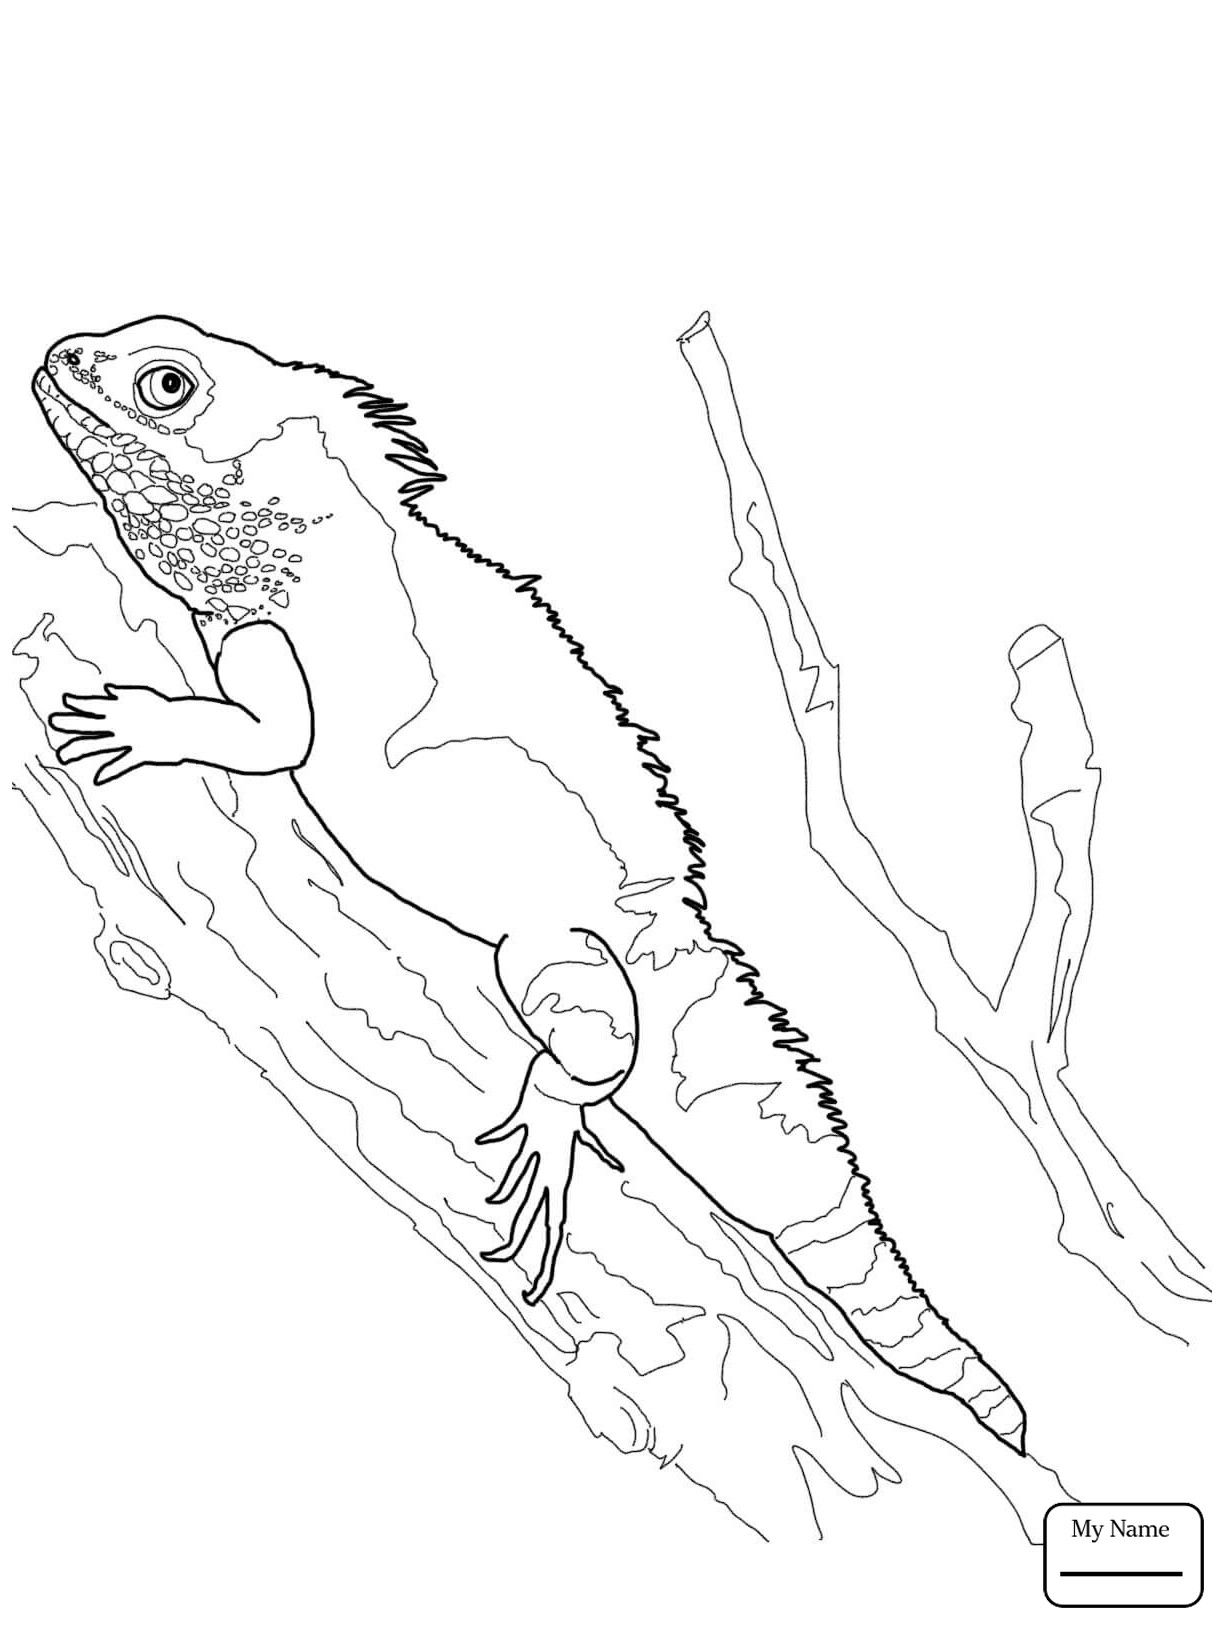 Bearded Dragon Coloring Page Youngandtae Com Dragon Coloring Page Bearded Dragon Colors Bearded Dragon